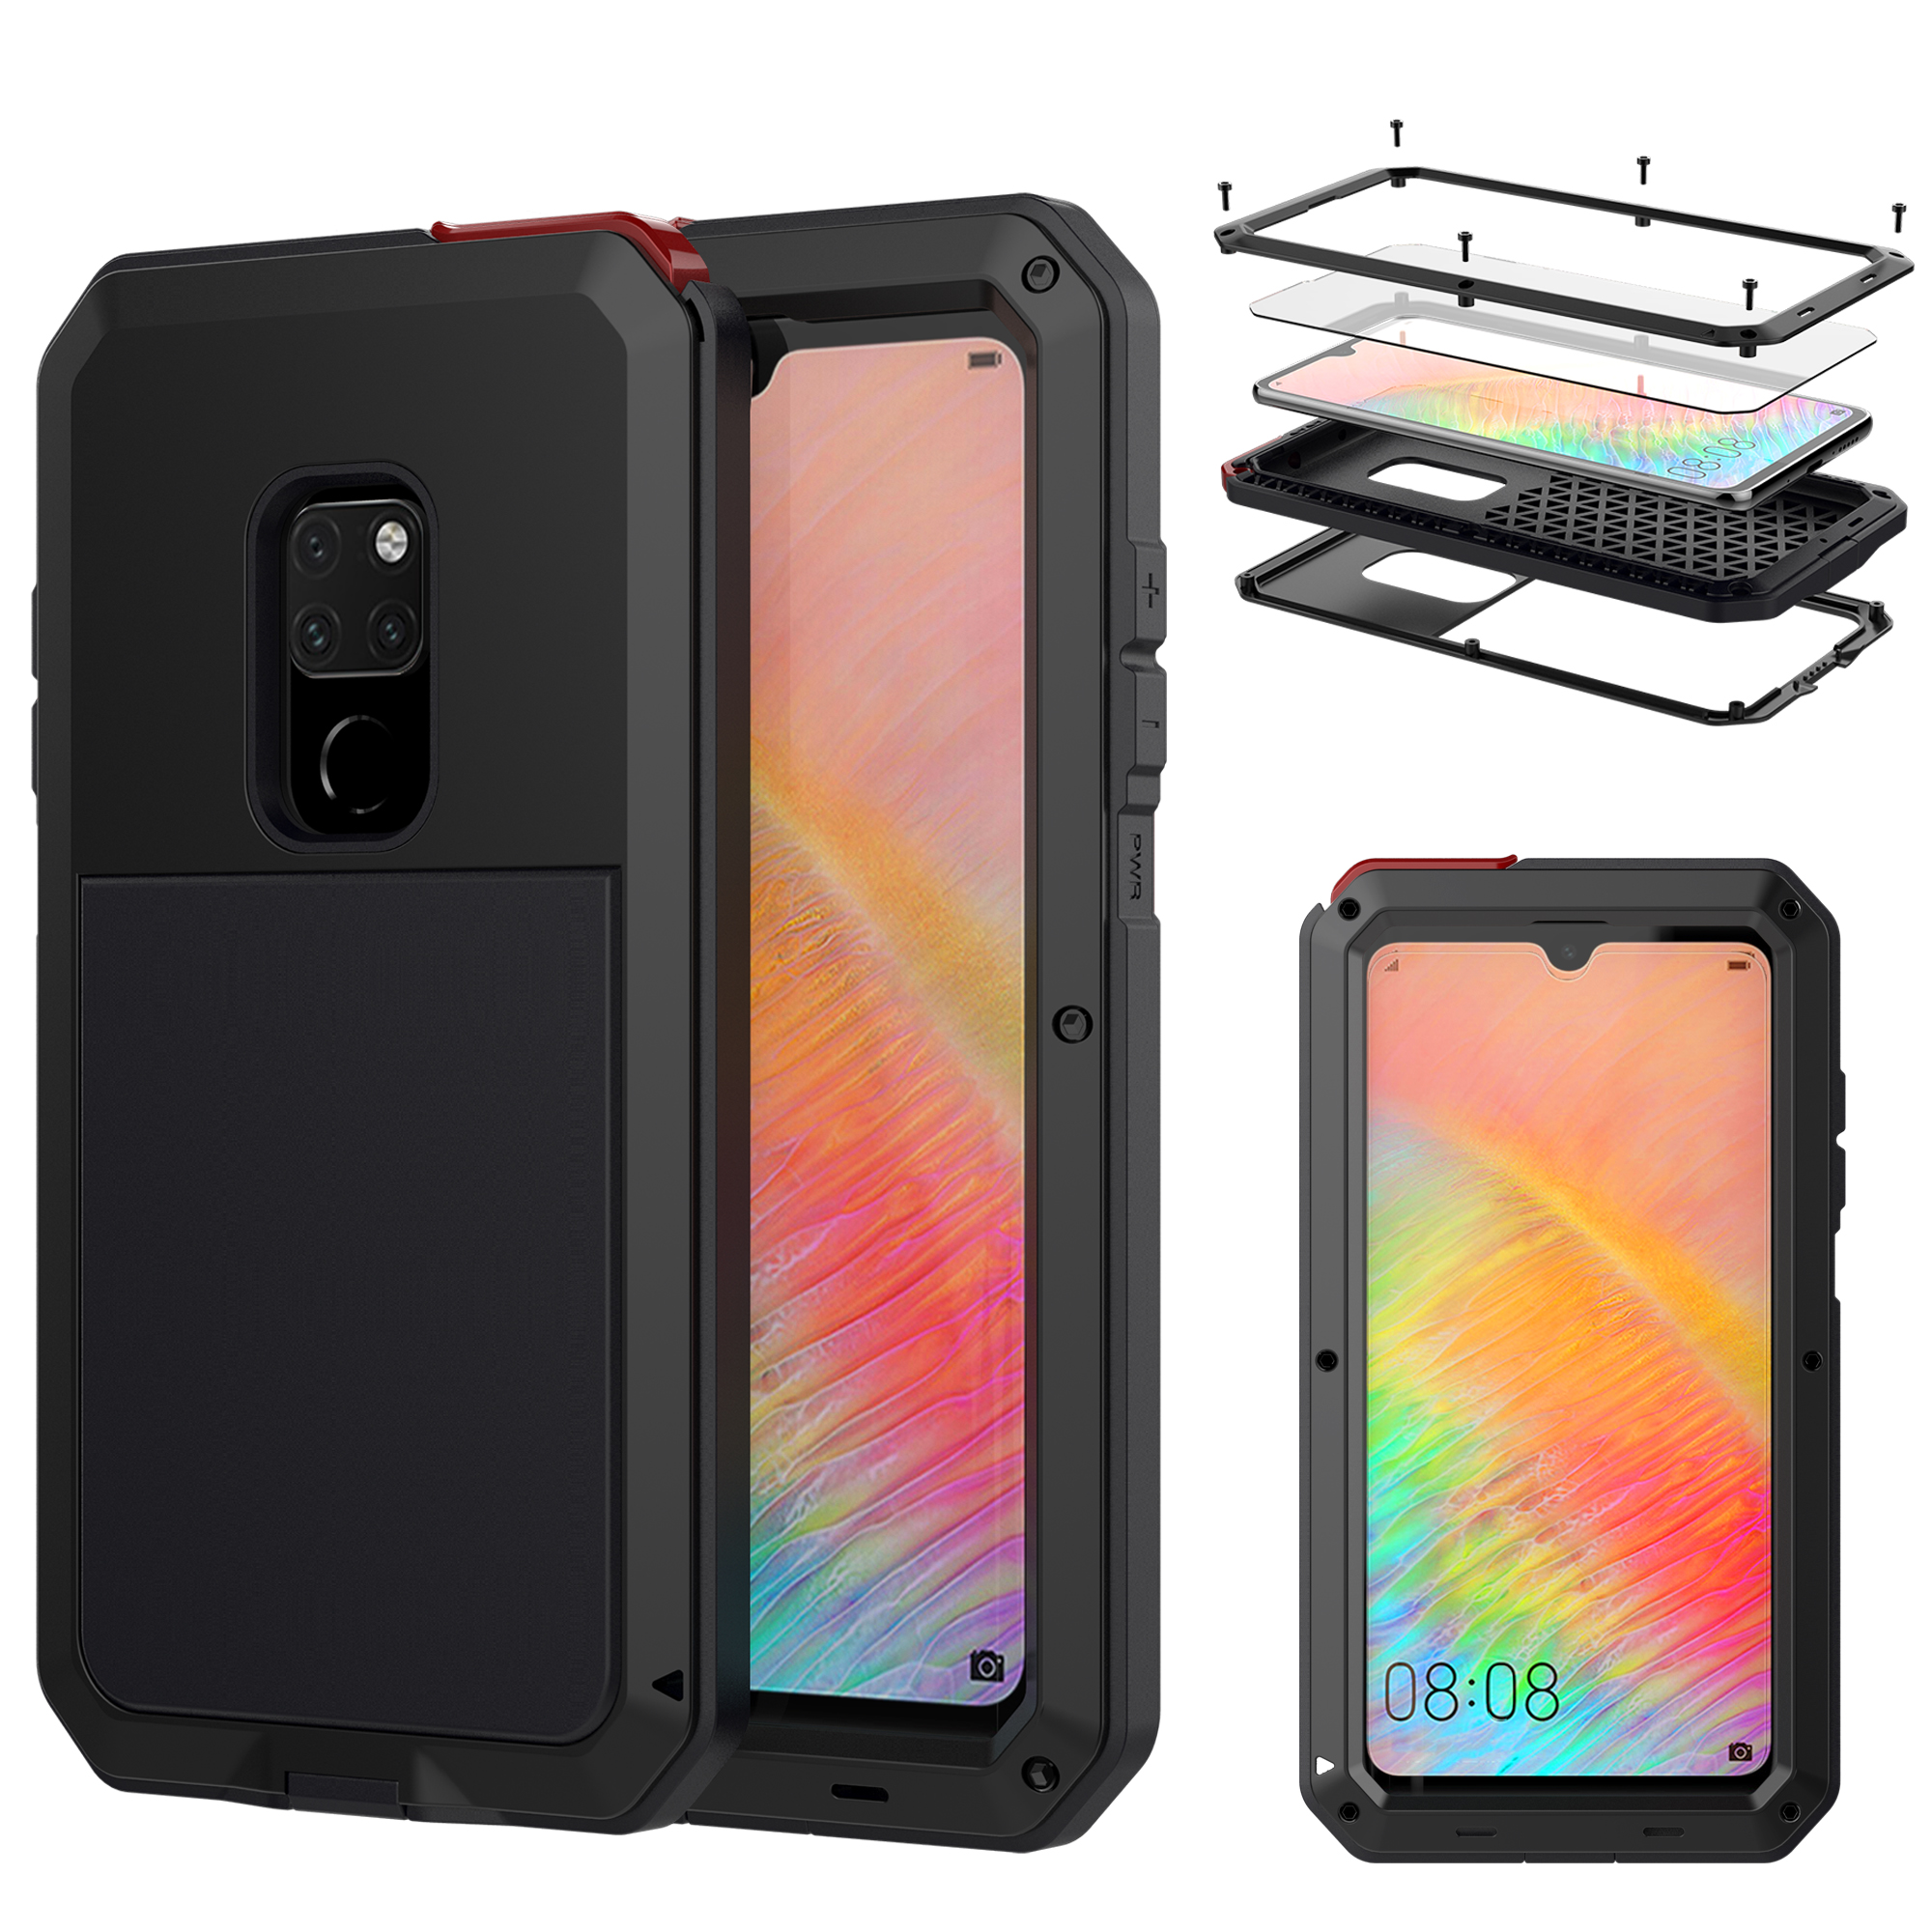 Tempered glass Heavy Duty Protection Doom armor Metal phone Case for <font><b>Huawei</b></font> <font><b>Mate</b></font> <font><b>20</b></font> <font><b>Pro</b></font> P20 <font><b>Pro</b></font> Cases Shockproof Dustproof <font><b>Cover</b></font> image